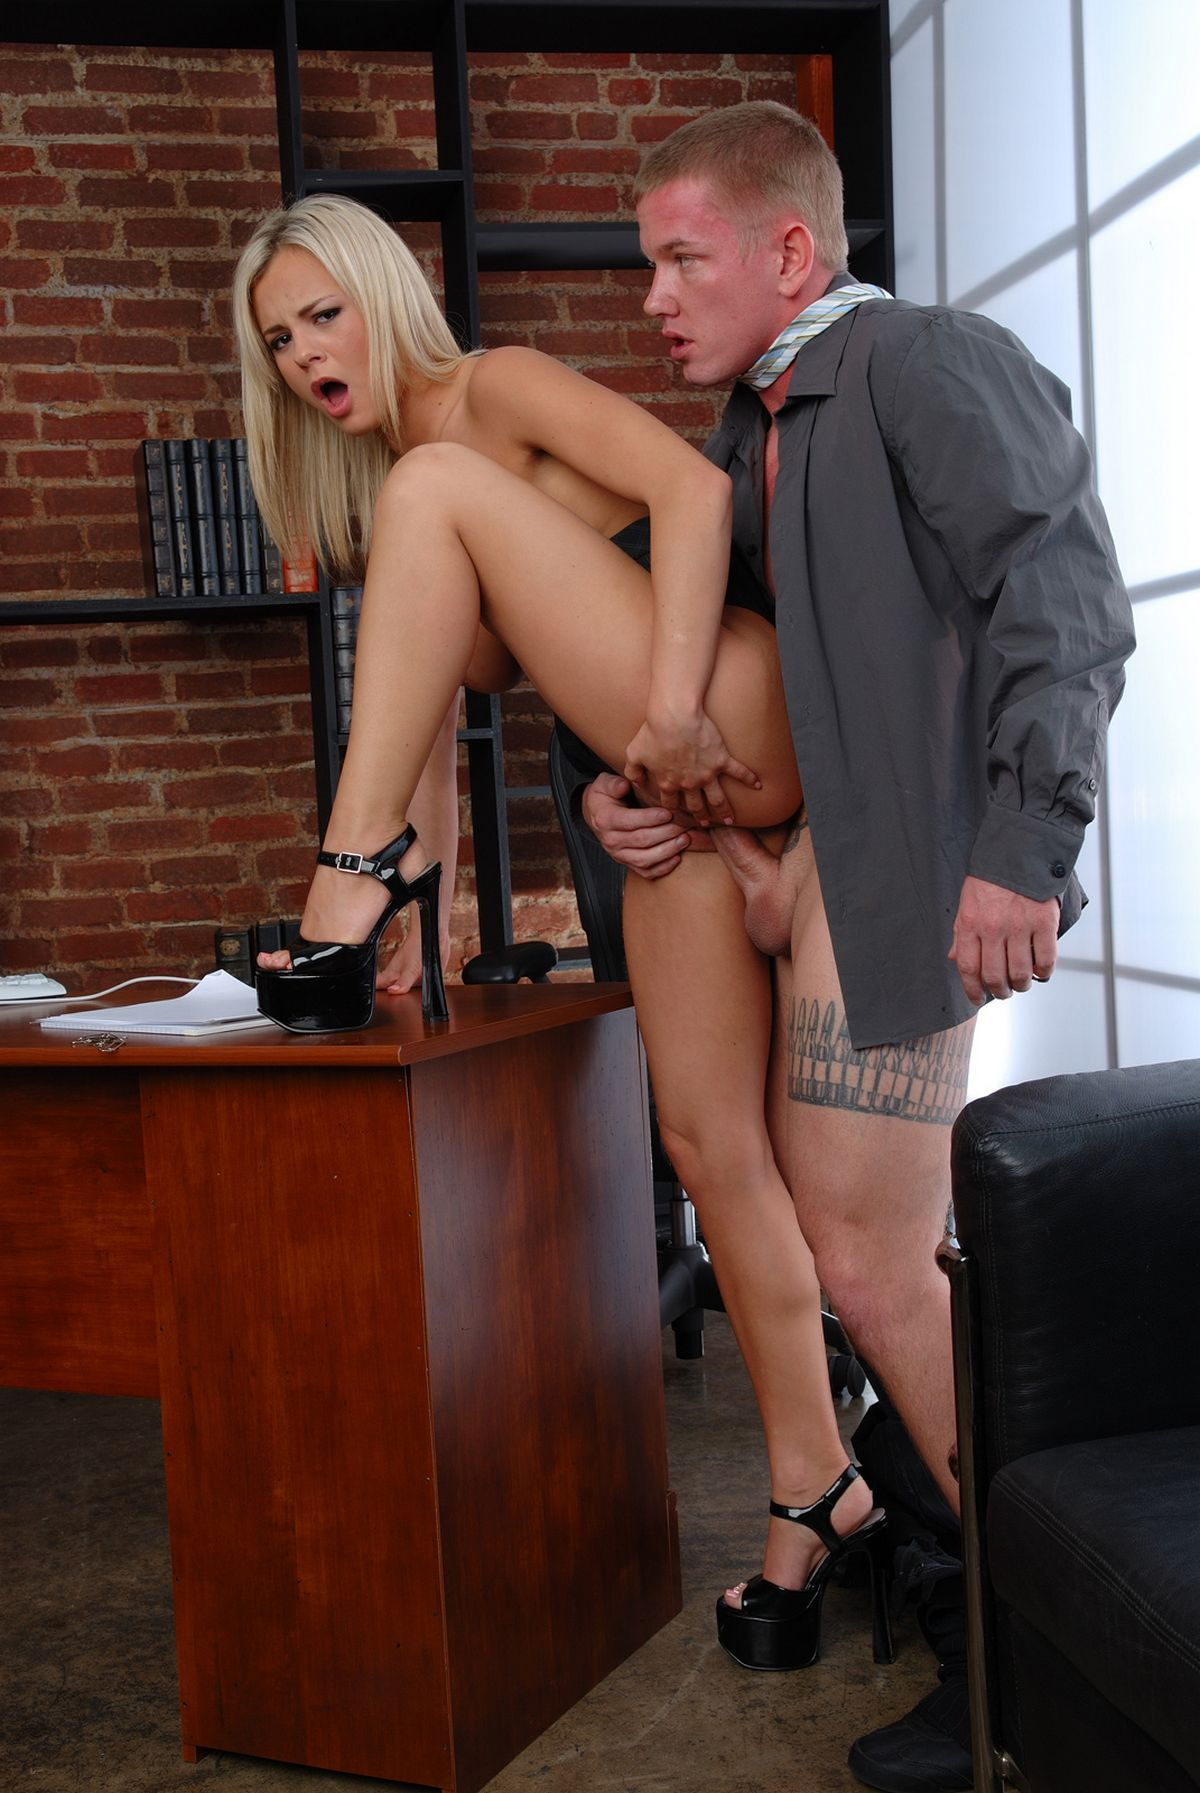 sex-at-work videos - XVIDEOSCOM